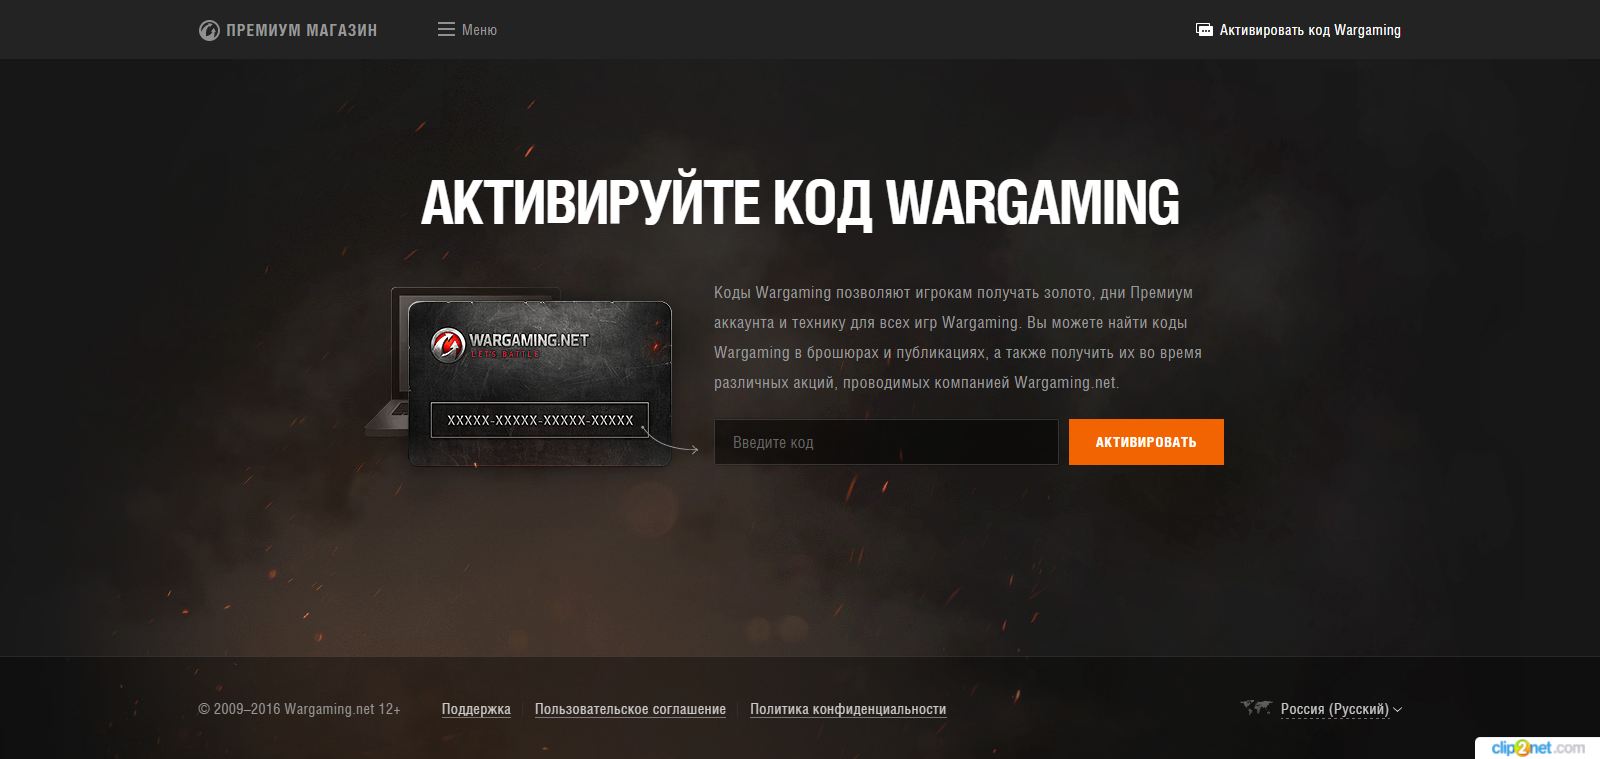 Invite codes for World of Tanks for 2016 per month